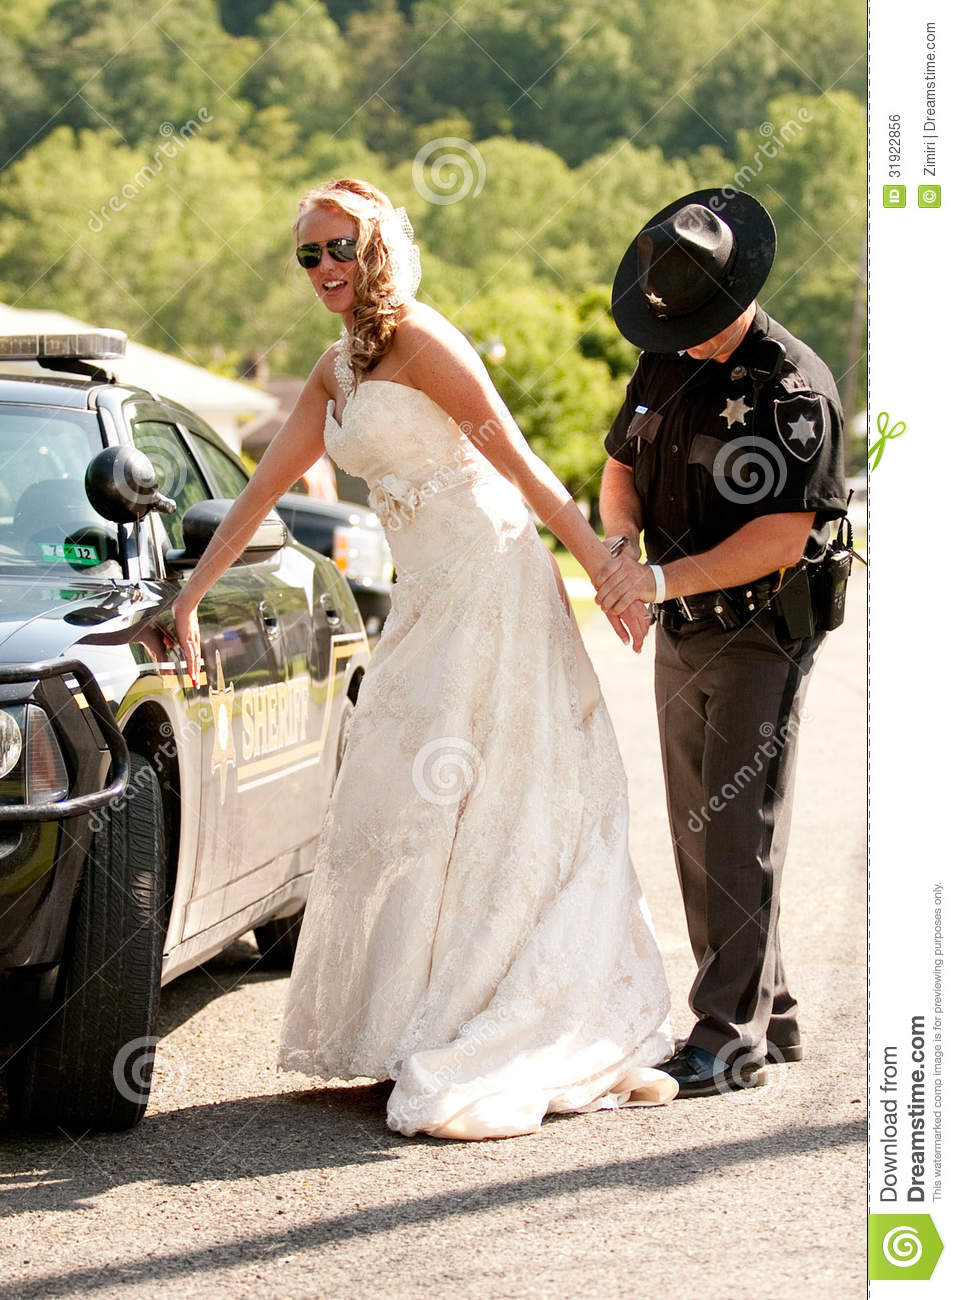 a bride is arrested on her wedding day royalty free stock